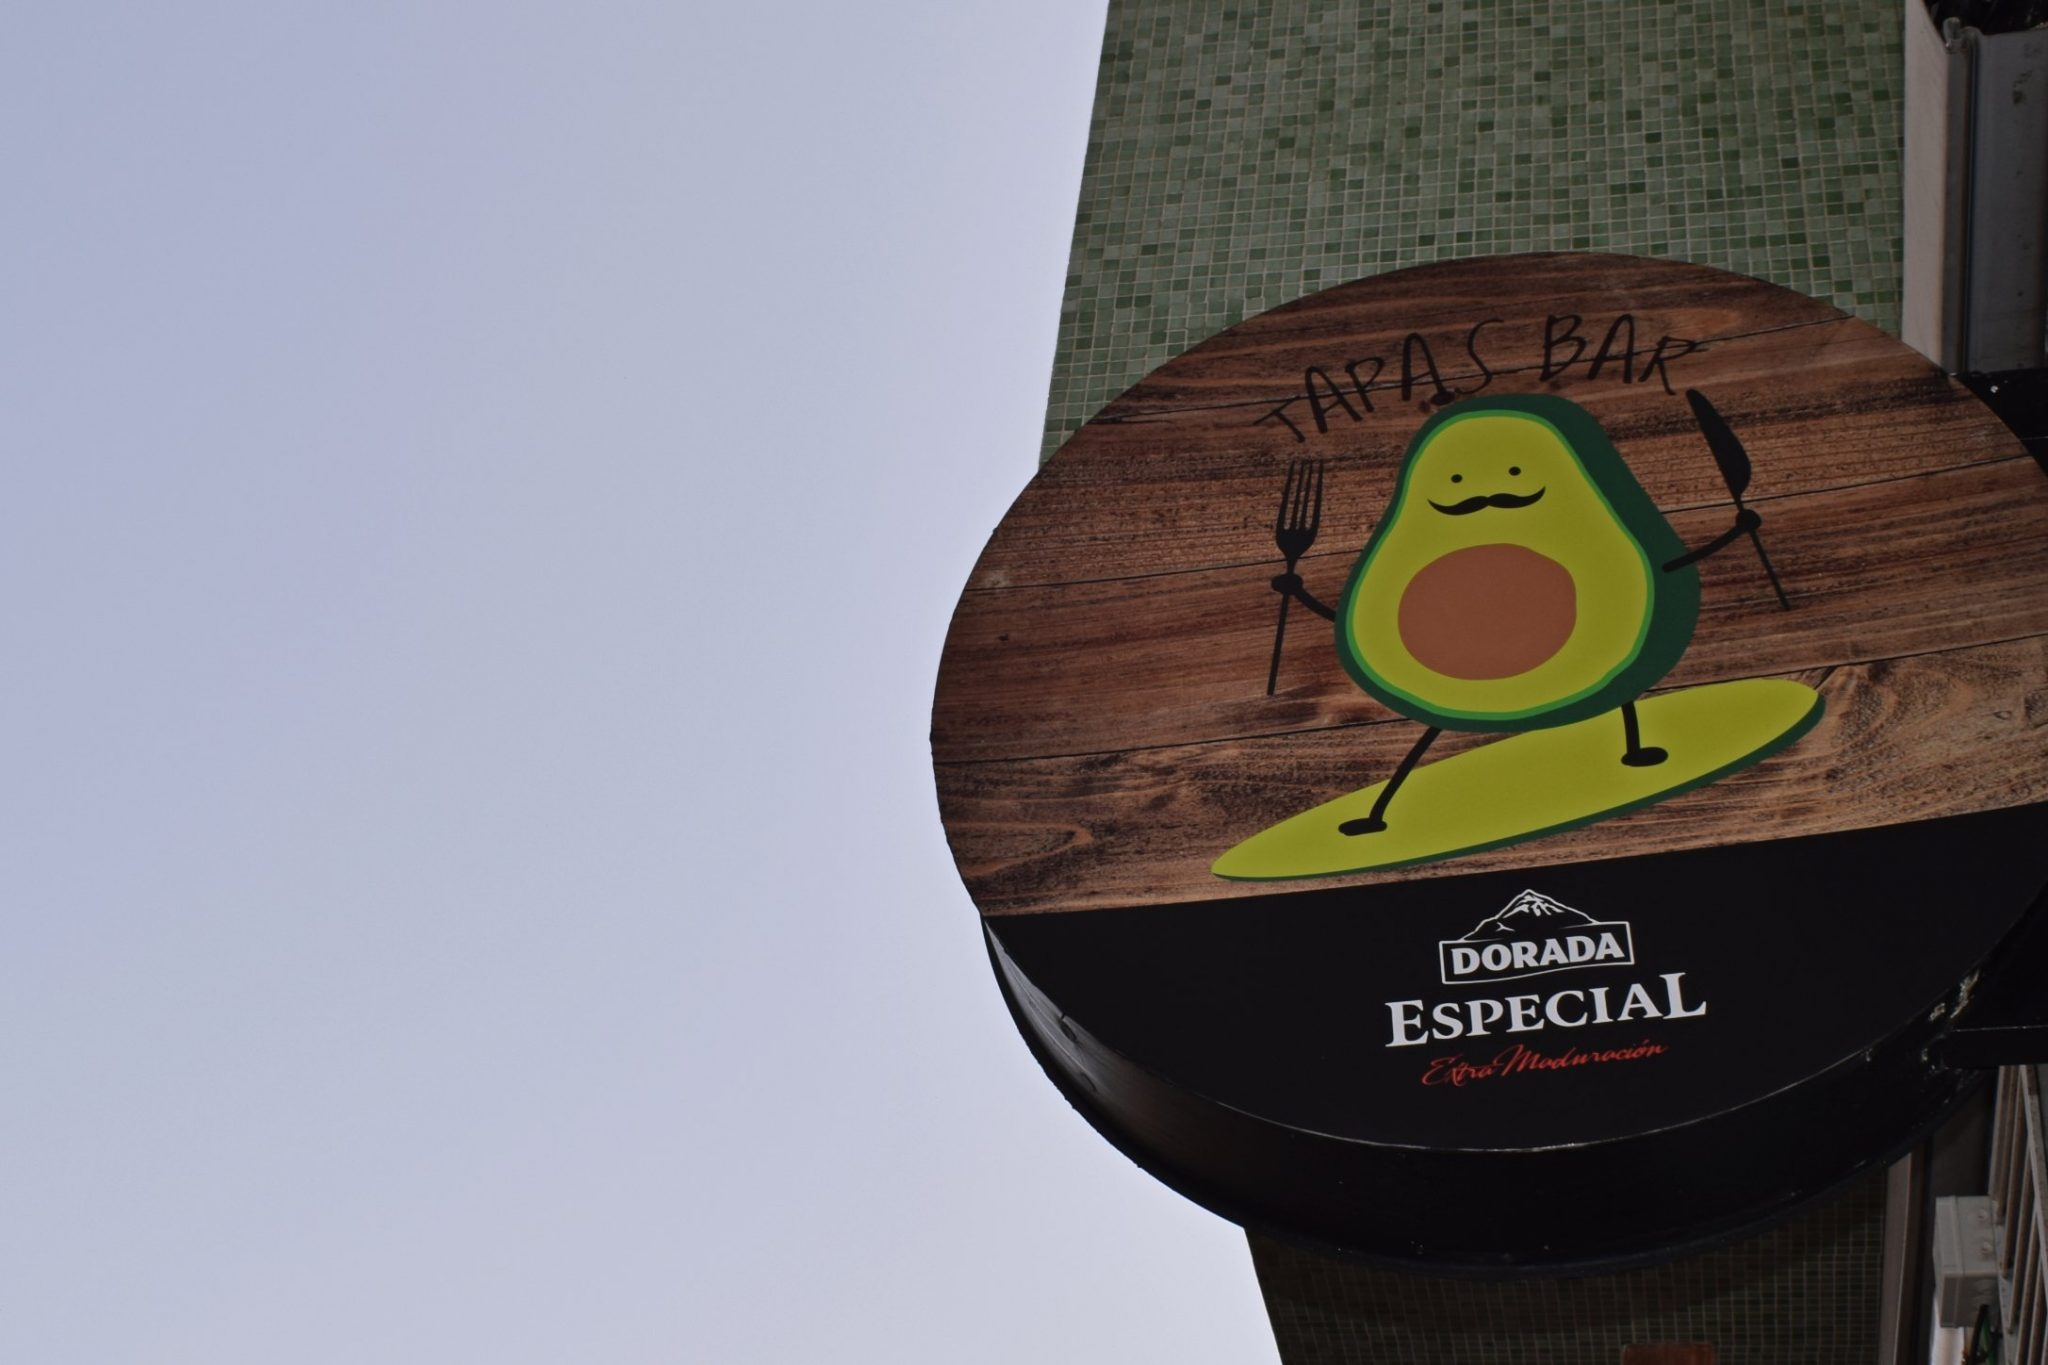 Avocadisimo Tapas Bar is the hot spot for any vegan avocado lovers.